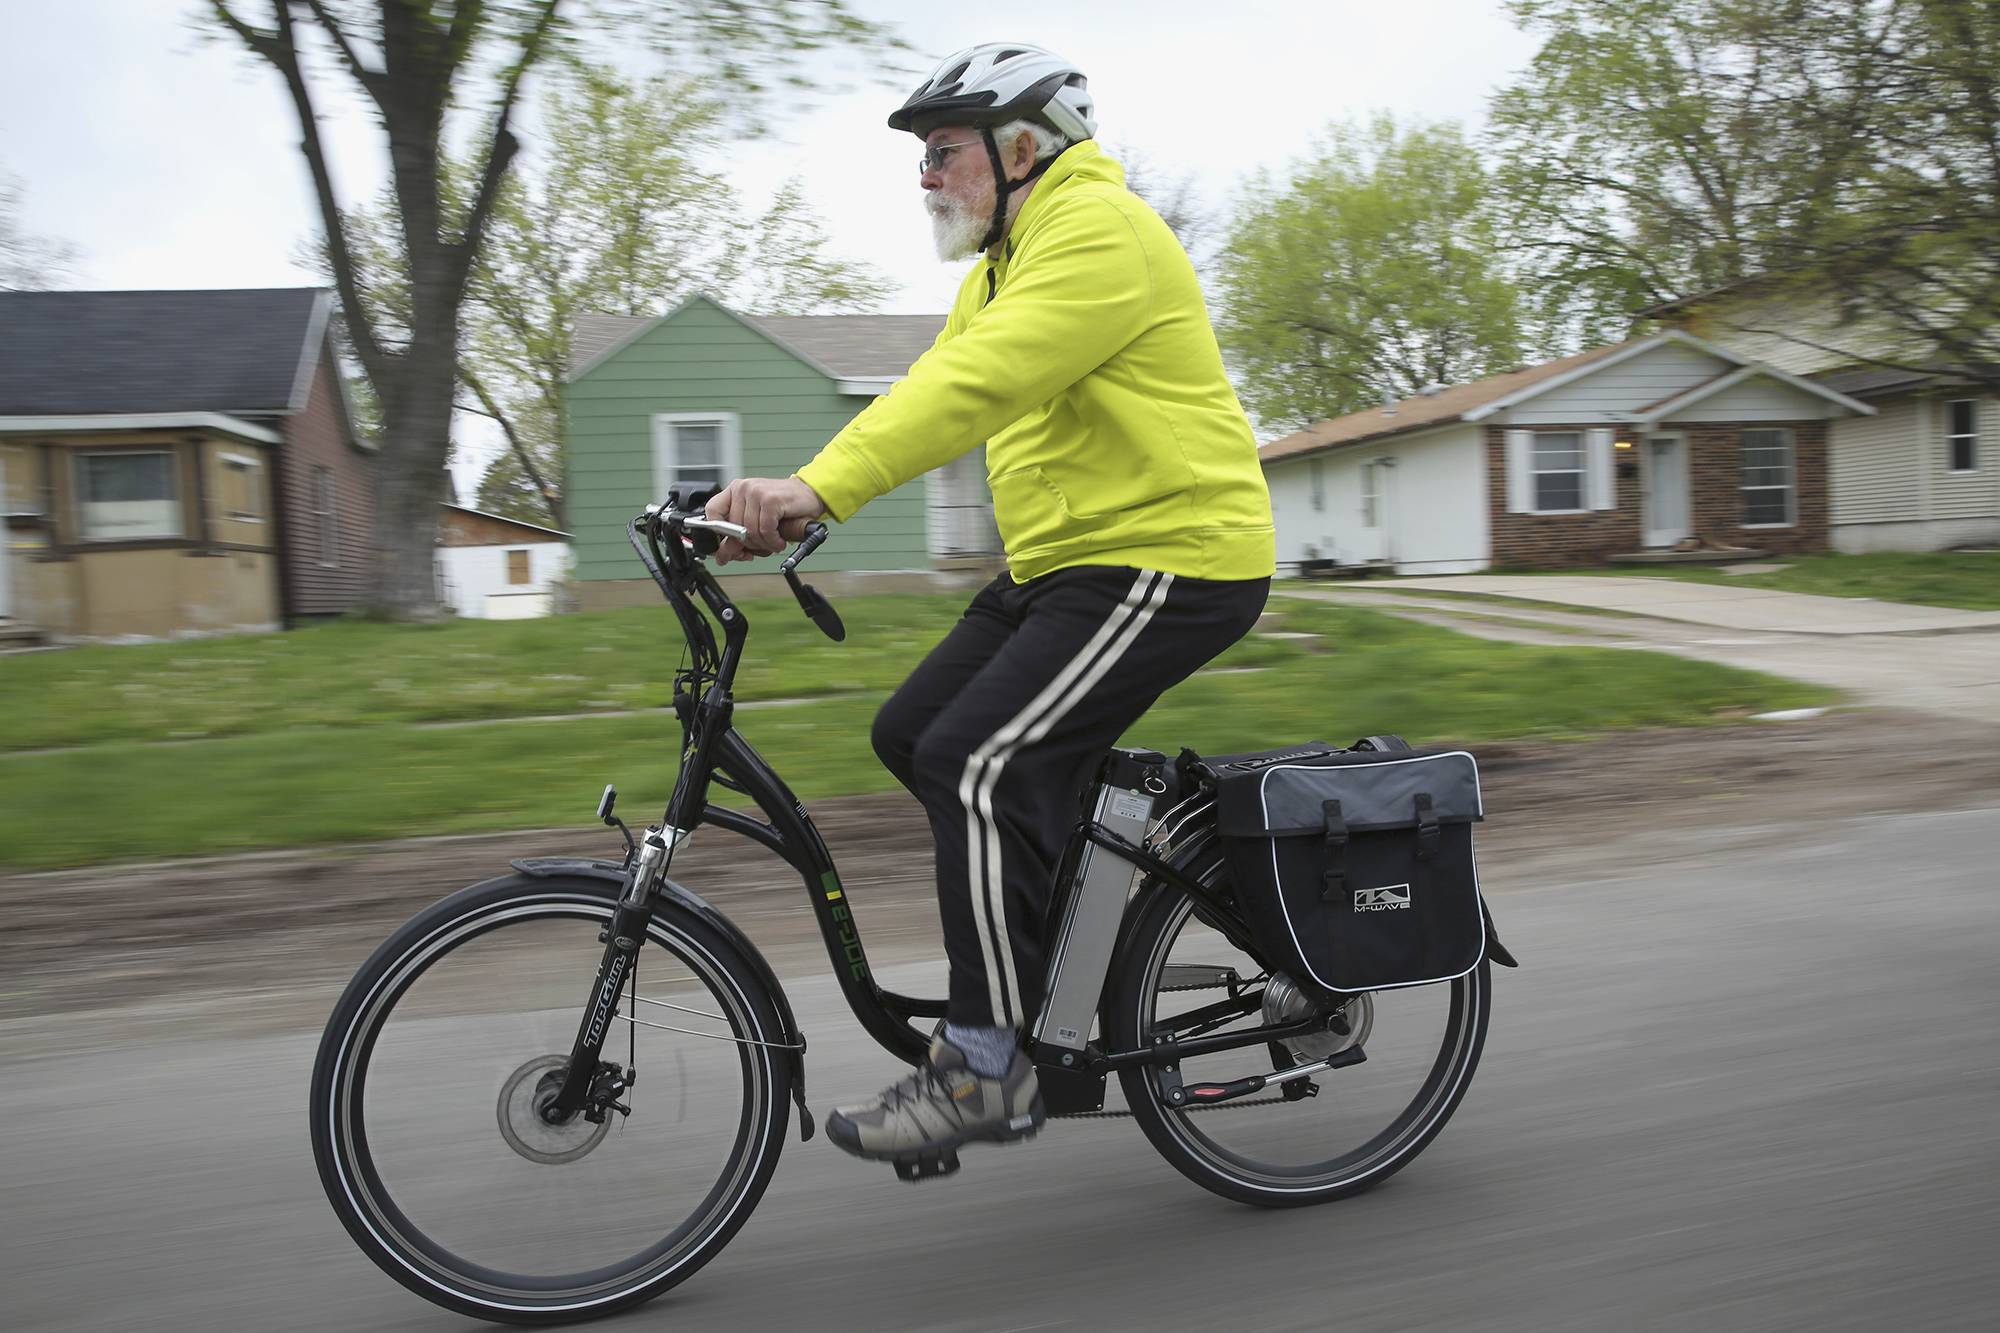 David Lasley rides his electric bike in Springfield. He uses his customized electric bicycle to commute between his north-end Springfield home and work.